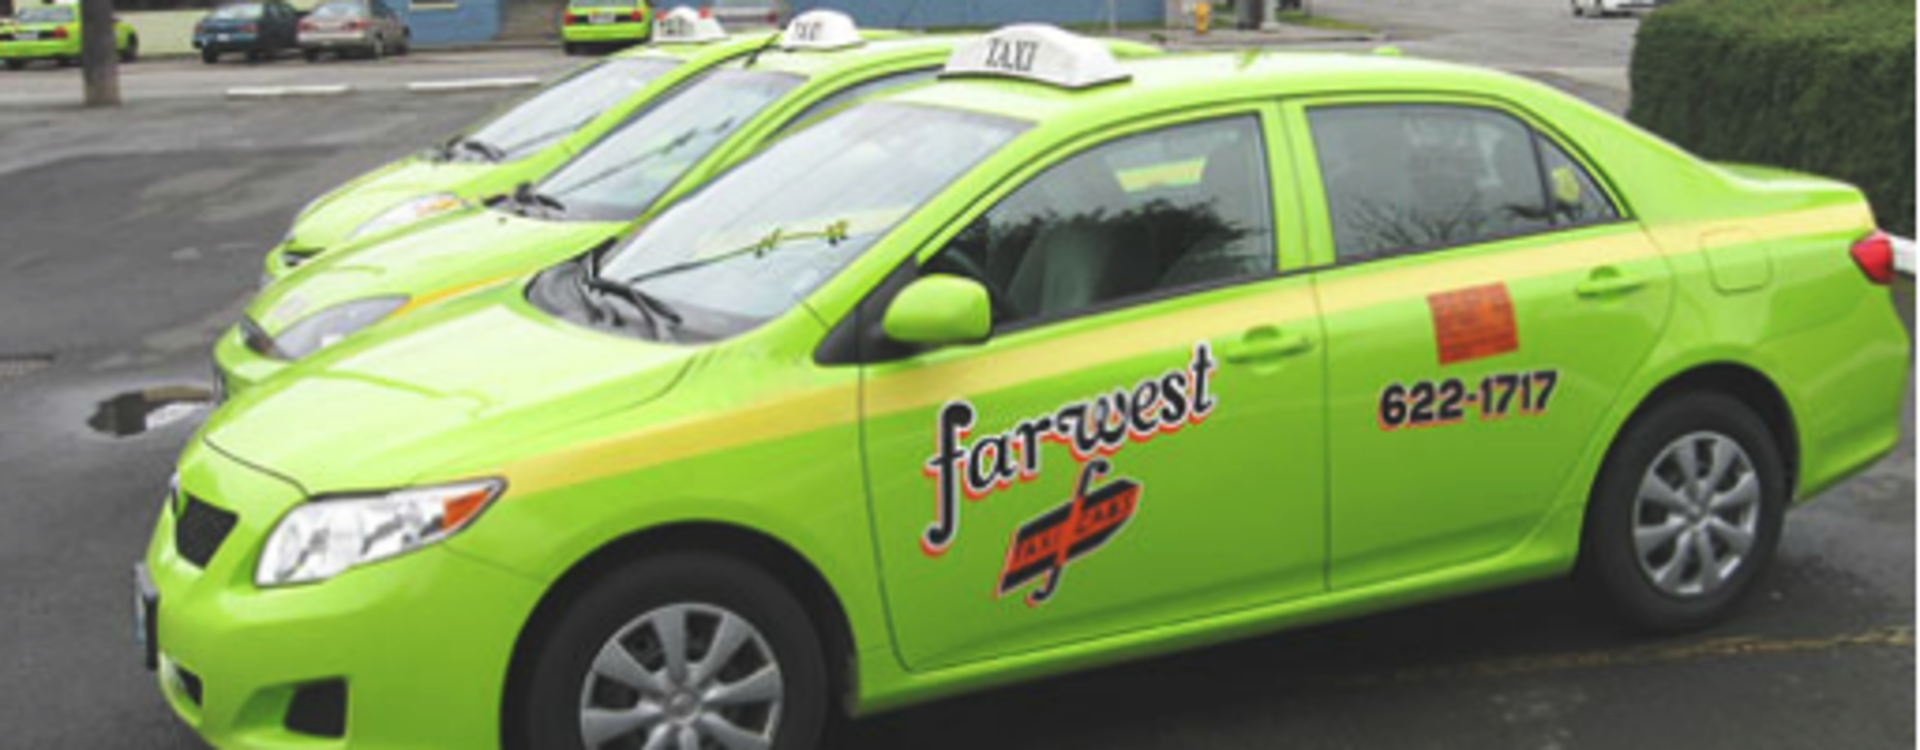 Farwest_Taxi-2.png